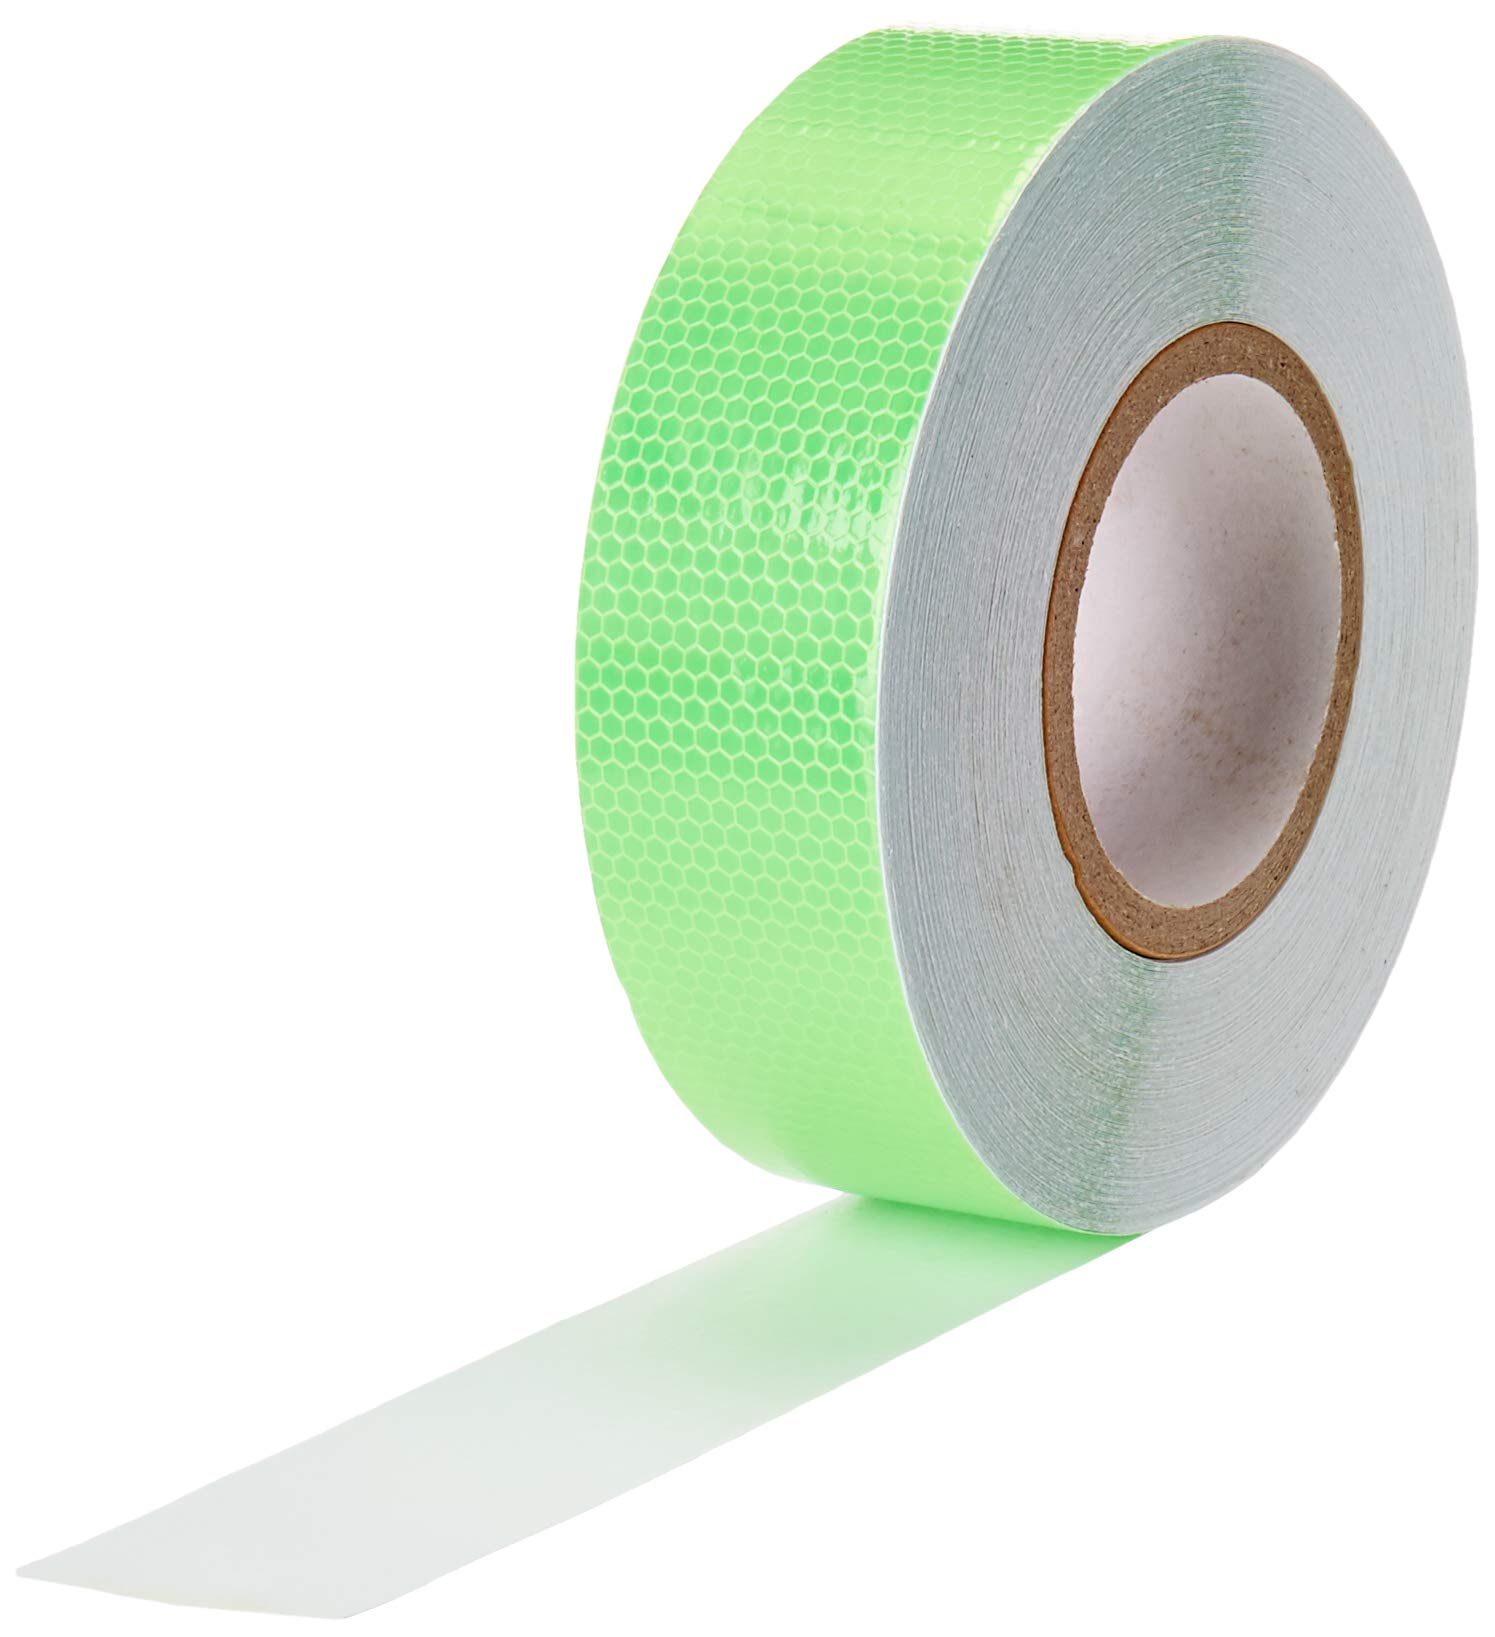 Abrams 2'' in x 150' ft Diamond Pattern Trailer Truck Conspicuity DOT Class 2 Reflective Safety Tape - Green